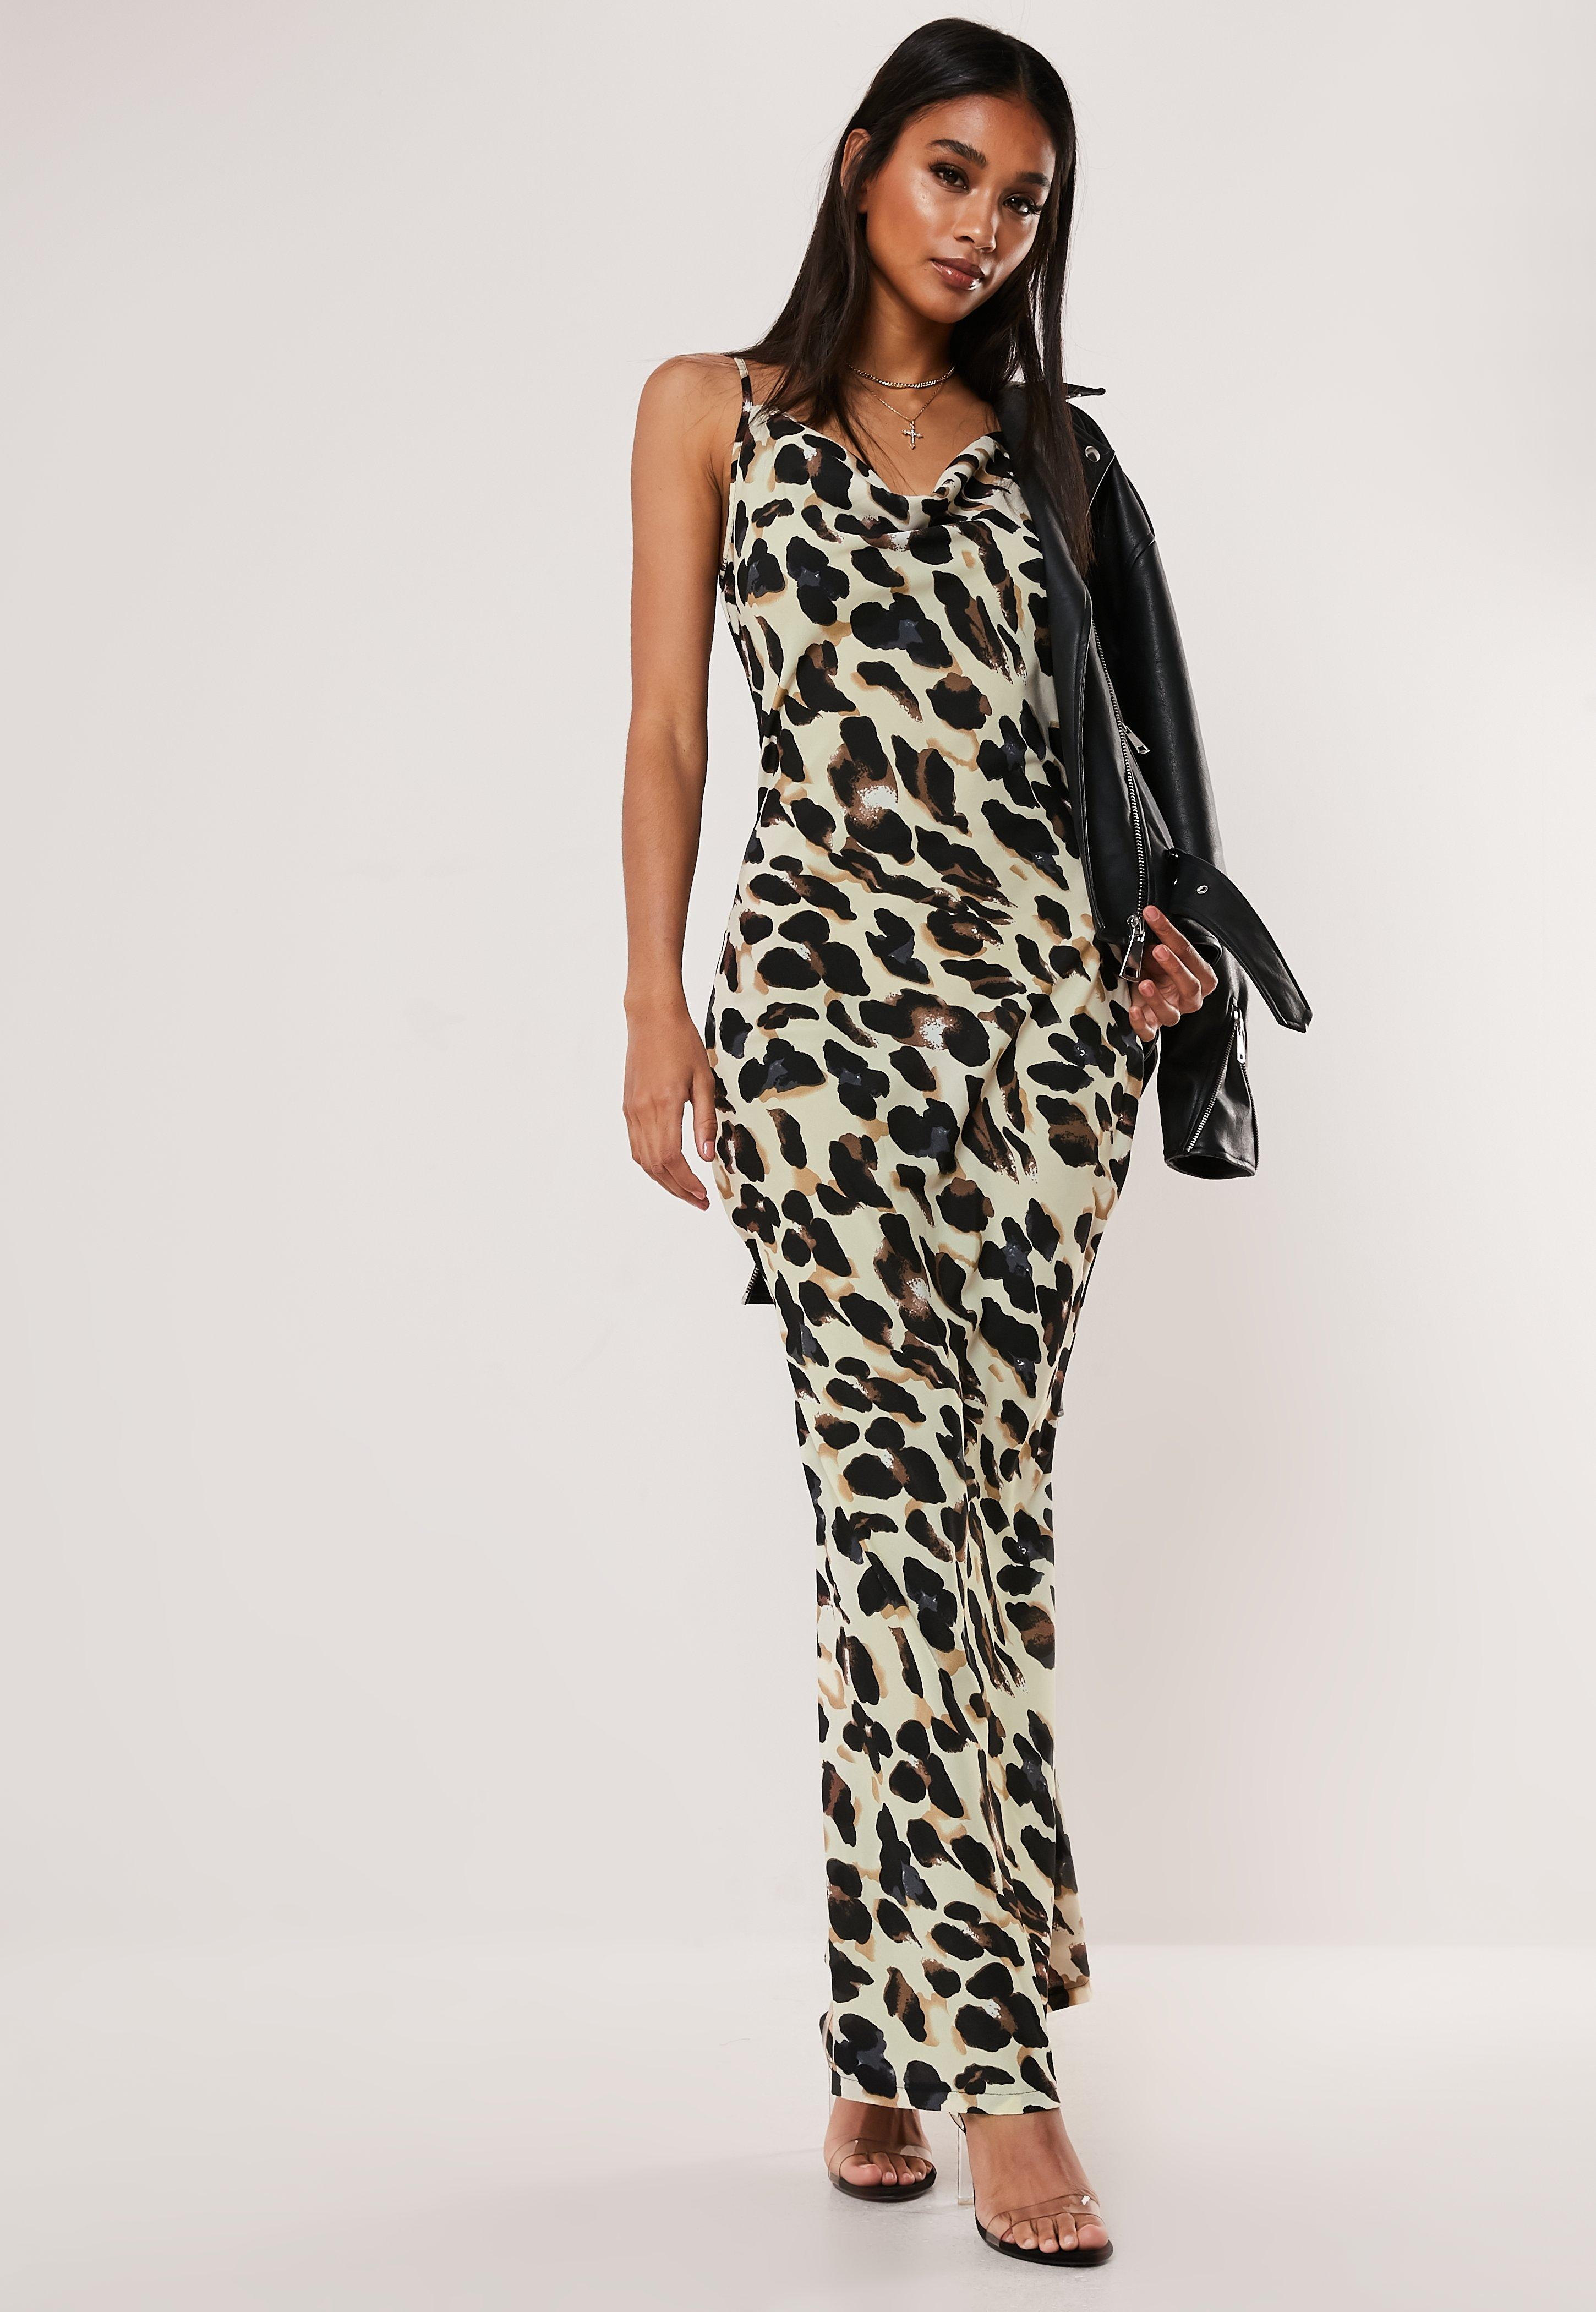 b266e468848f13 Animal Print Clothing | Snake & Leopard Print Dresses - Missguided